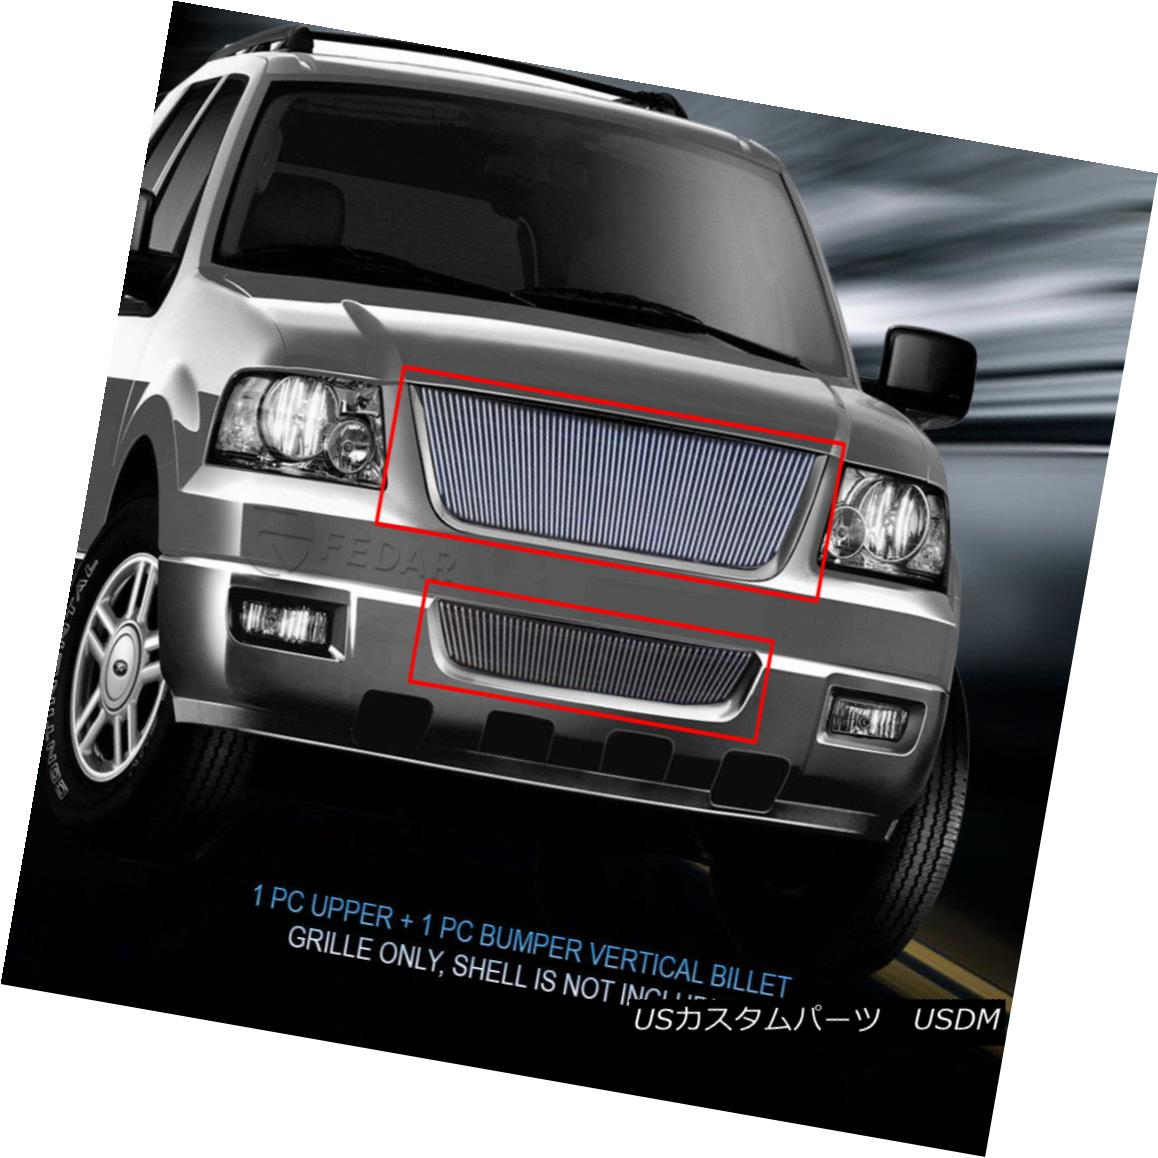 グリル 03-06 Ford Expedition Vertical Billet Grille Grill Combo Insert Fedar 03-06 Ford Expedition VerticalビレットグリルグリルコンボインサートFedar